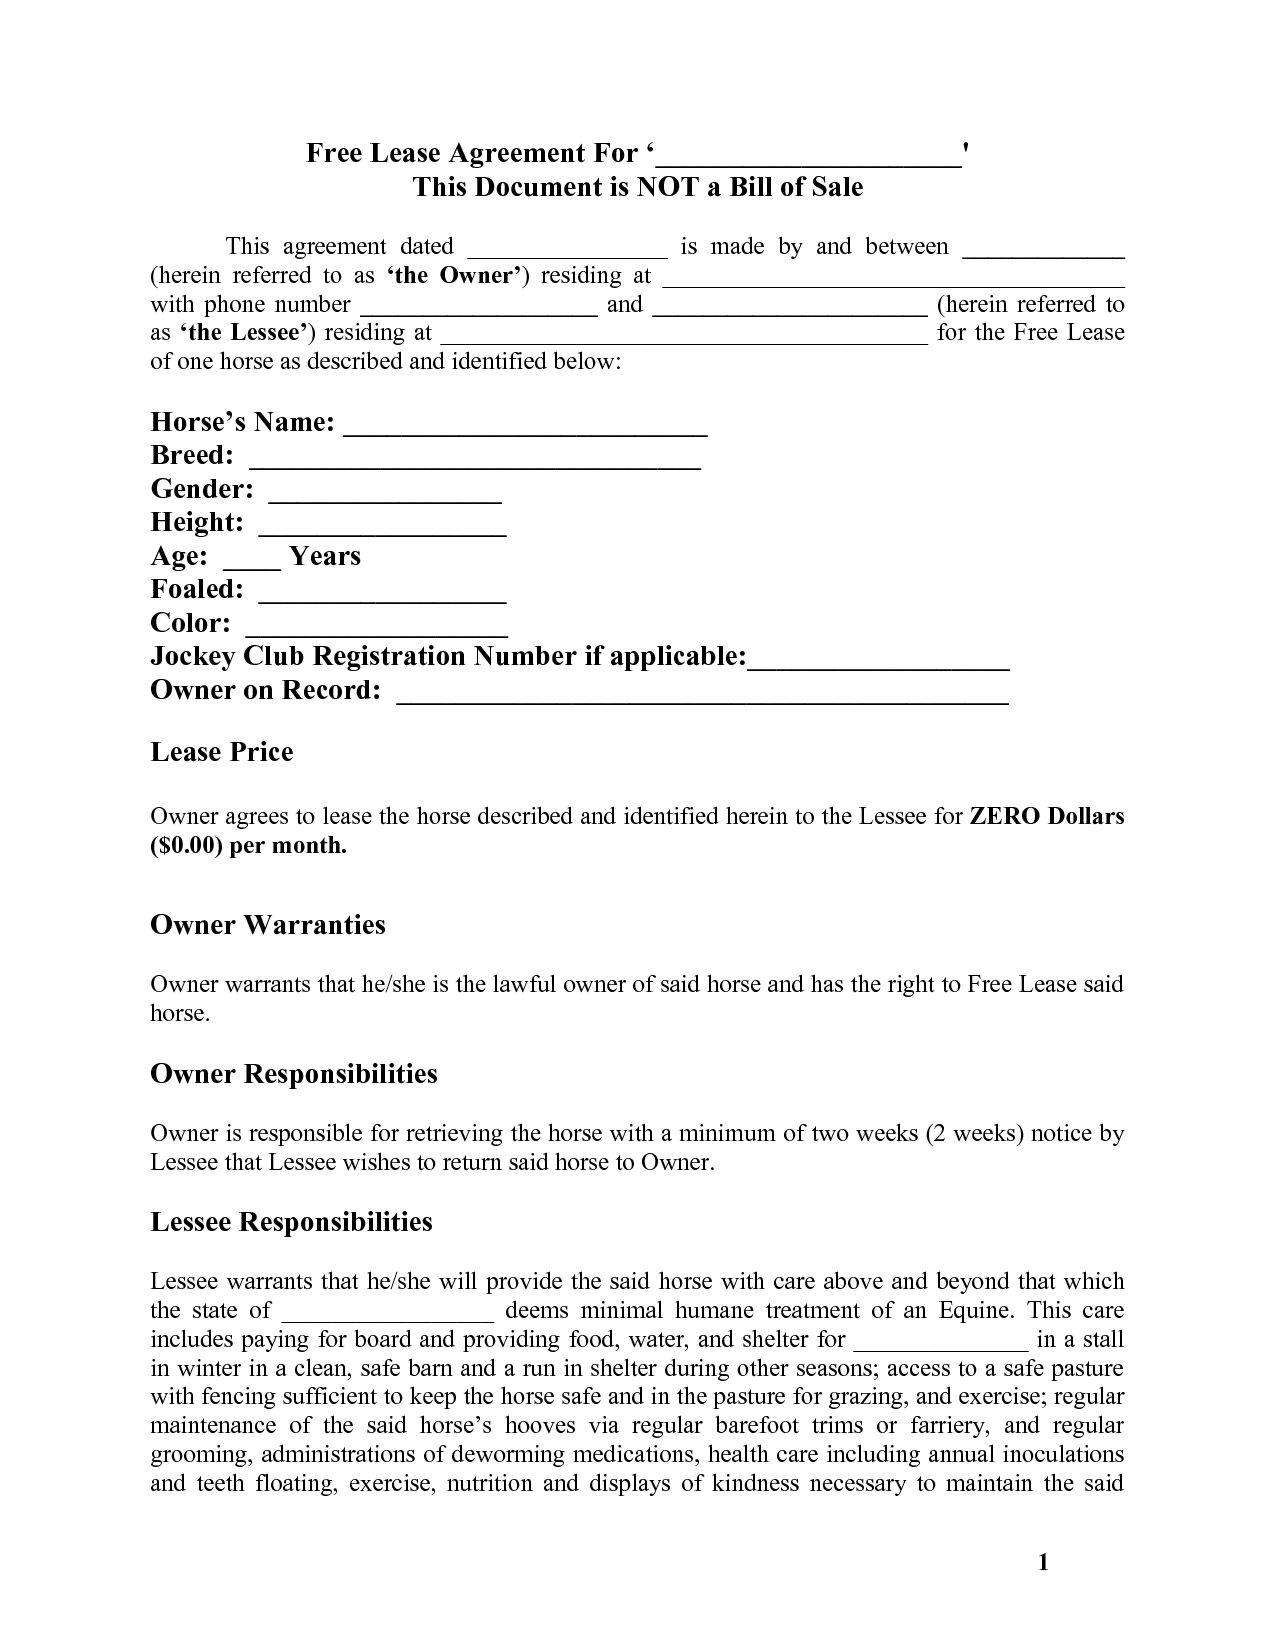 Horse Lease Agreement Template Free